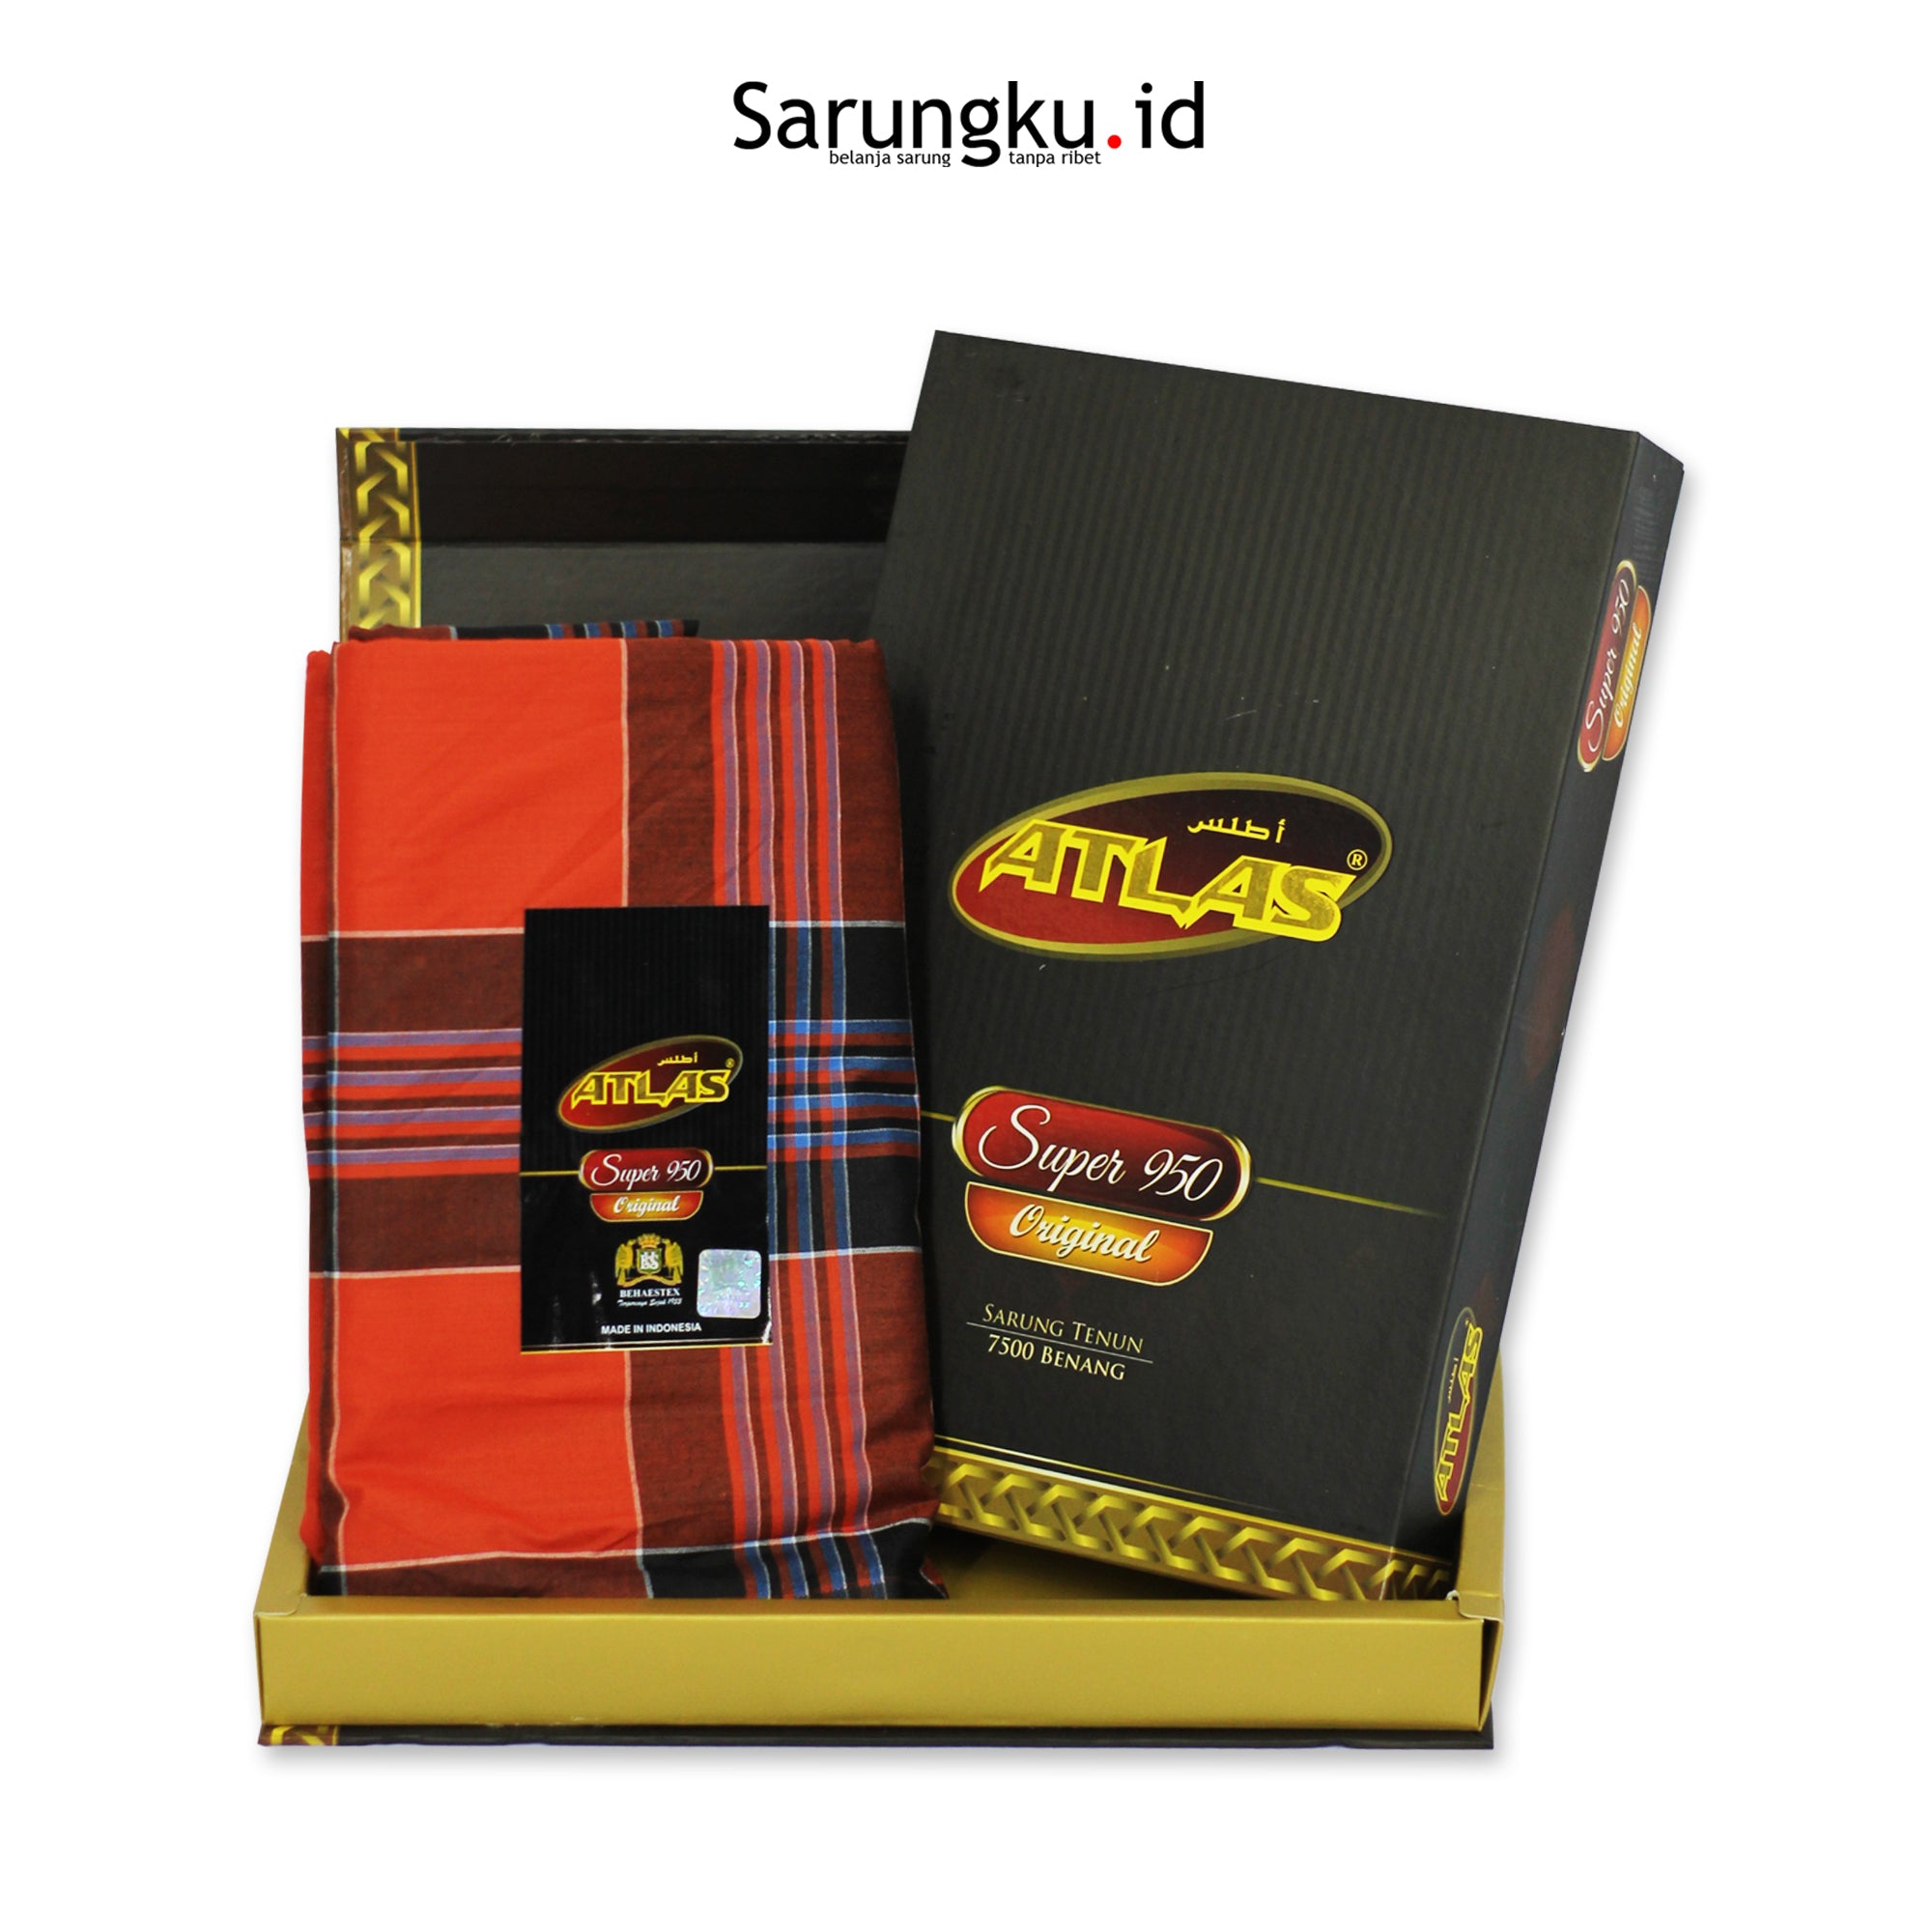 SARUNG ATLAS SUPER 950 ORIGINAL ECER/GROSIR-10PCS